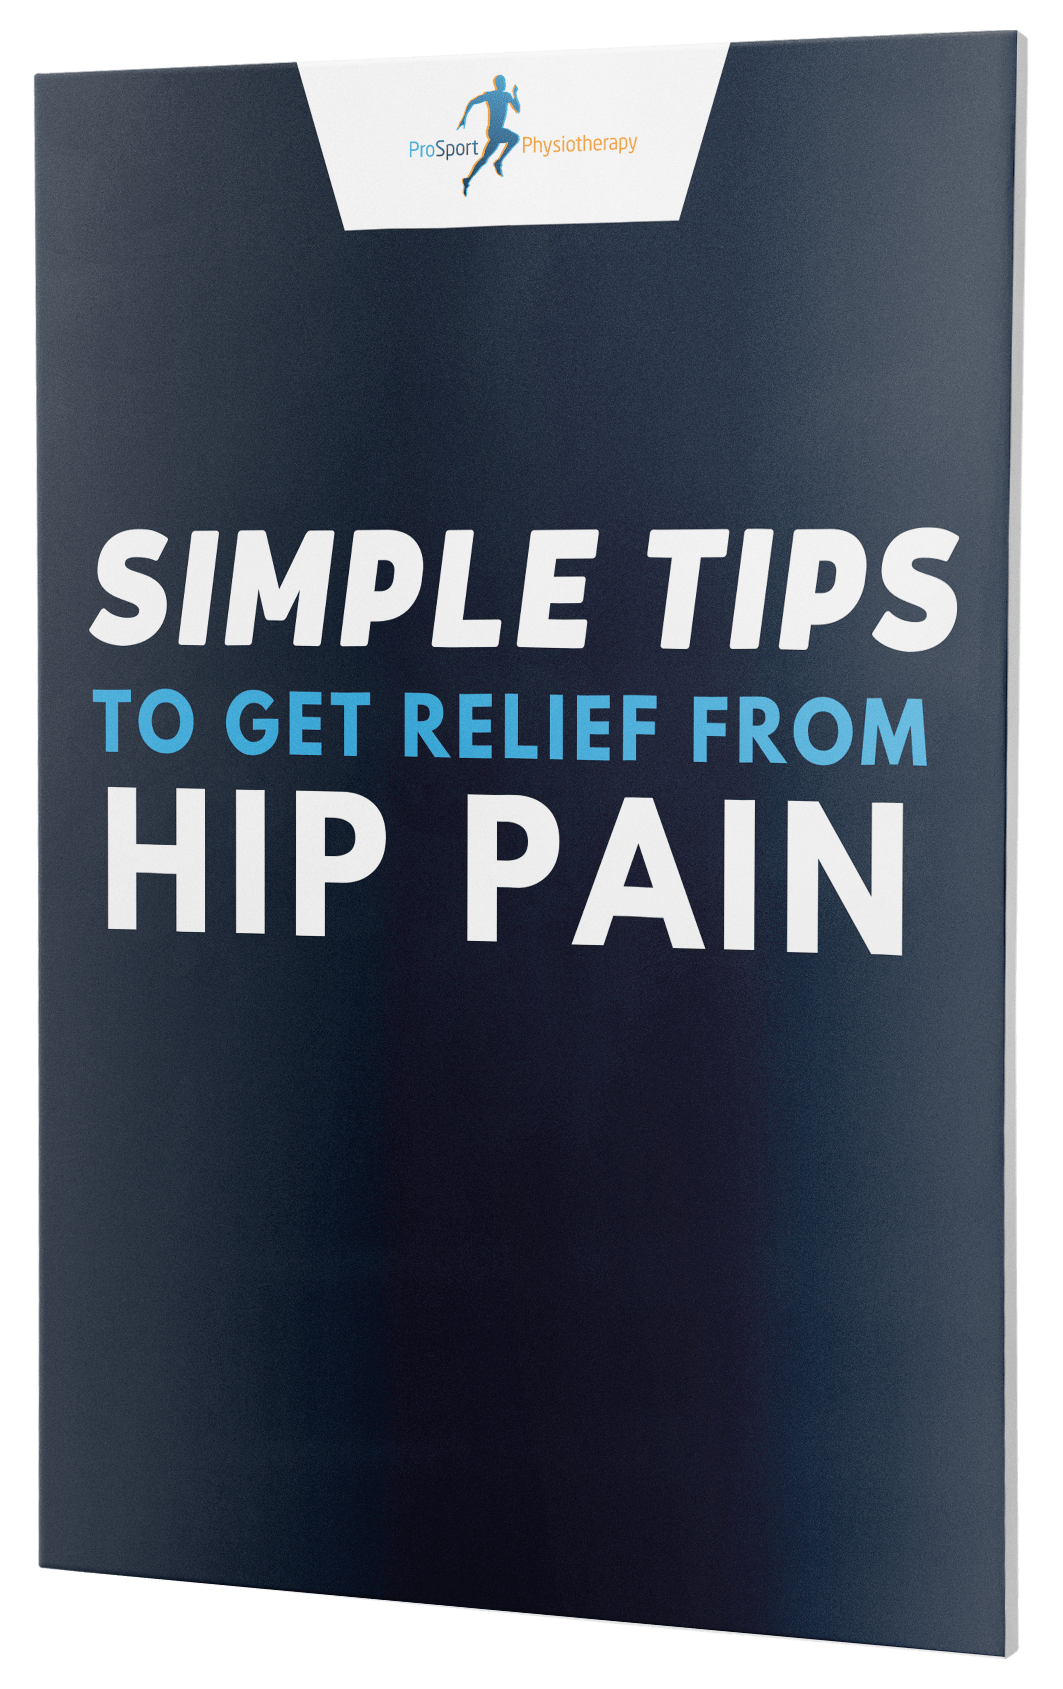 Hip Pain Relief PDF Guide - Pro Sport Physiotherapy Huddersfield Clinic